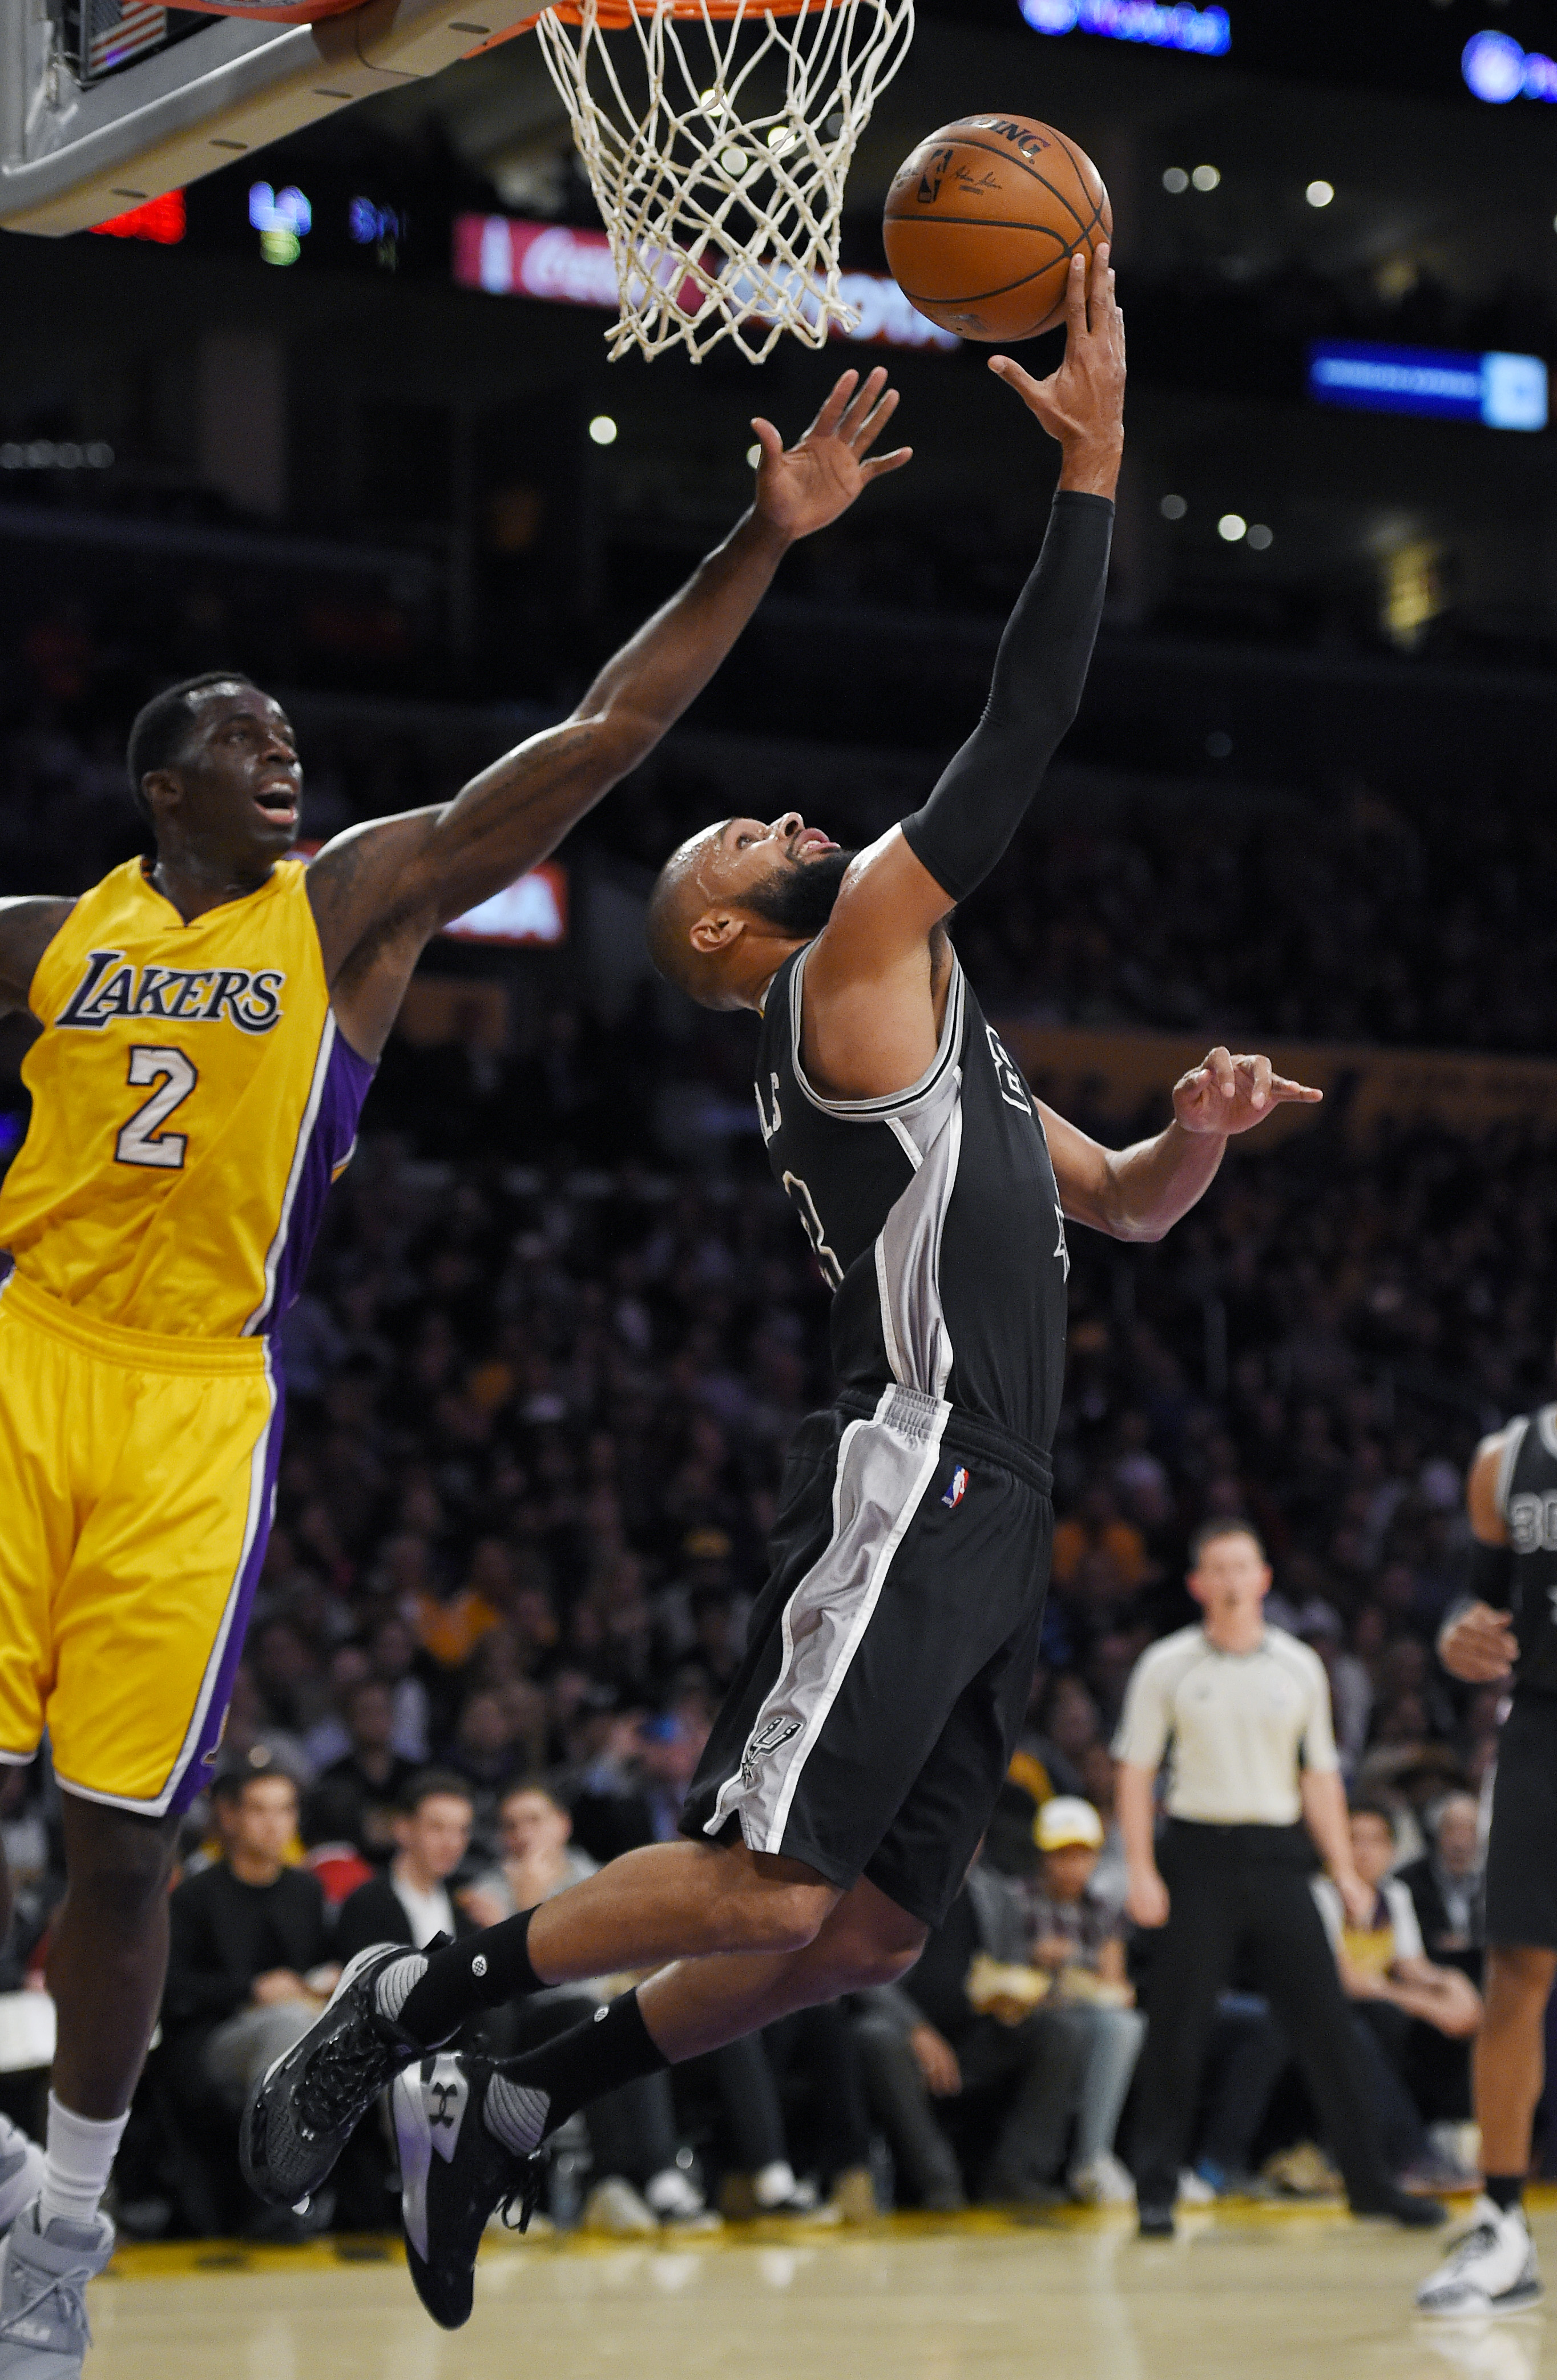 San Antonio Spurs guard Patty Mills, right, shoots as Los Angeles Lakers forward Brandon Bass defends during the first half of an NBA basketball game Friday, Jan. 22, 2016, in Los Angeles. (AP Photo/Mark J. Terrill)